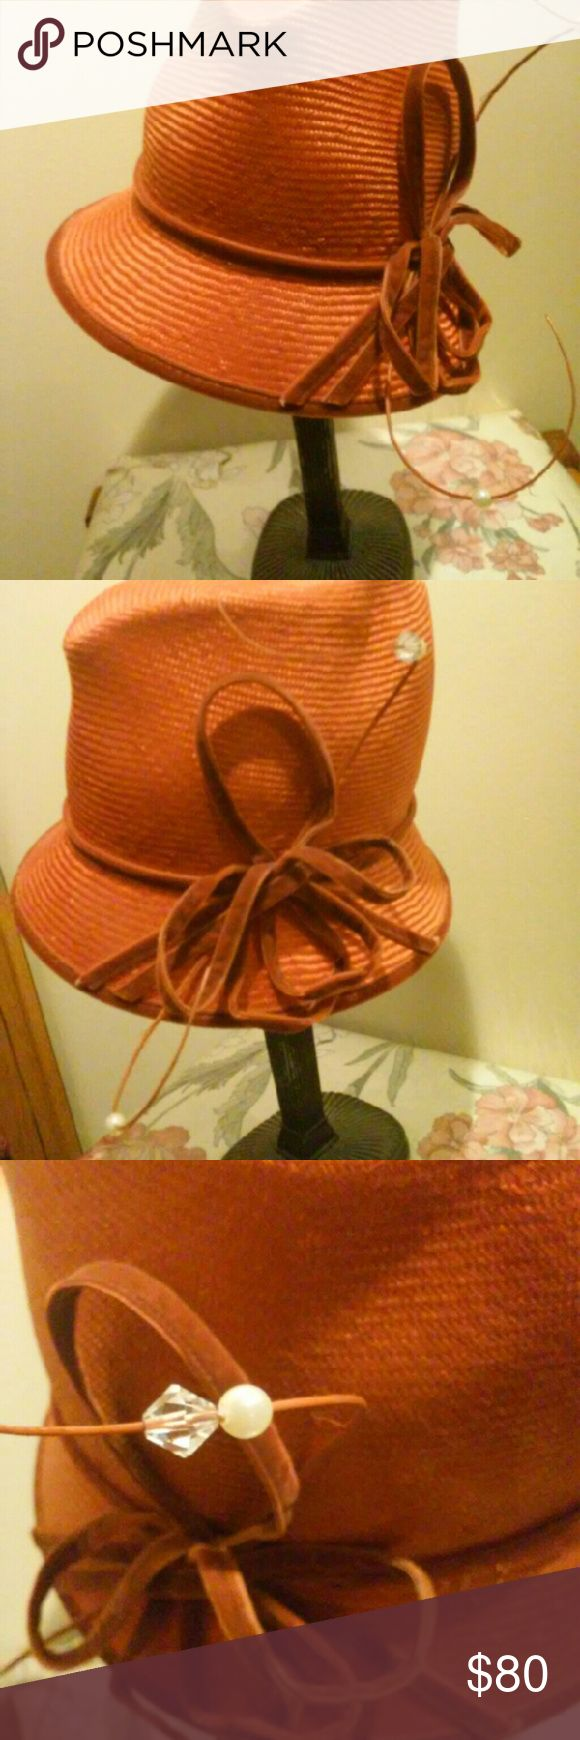 Orange Fedora Hat Ladies,,You are looking at a Beautiful Orange hat with velvet trim...Its Accent with  Velvet bow tie topped with Pearl and Stone.You can wear this hat ALL YEAR ROUND.,...:Worn Once performing at a Hat Show at a Convention***REASONABLE OFFERS ACCEPTED!!! Accessories Hats